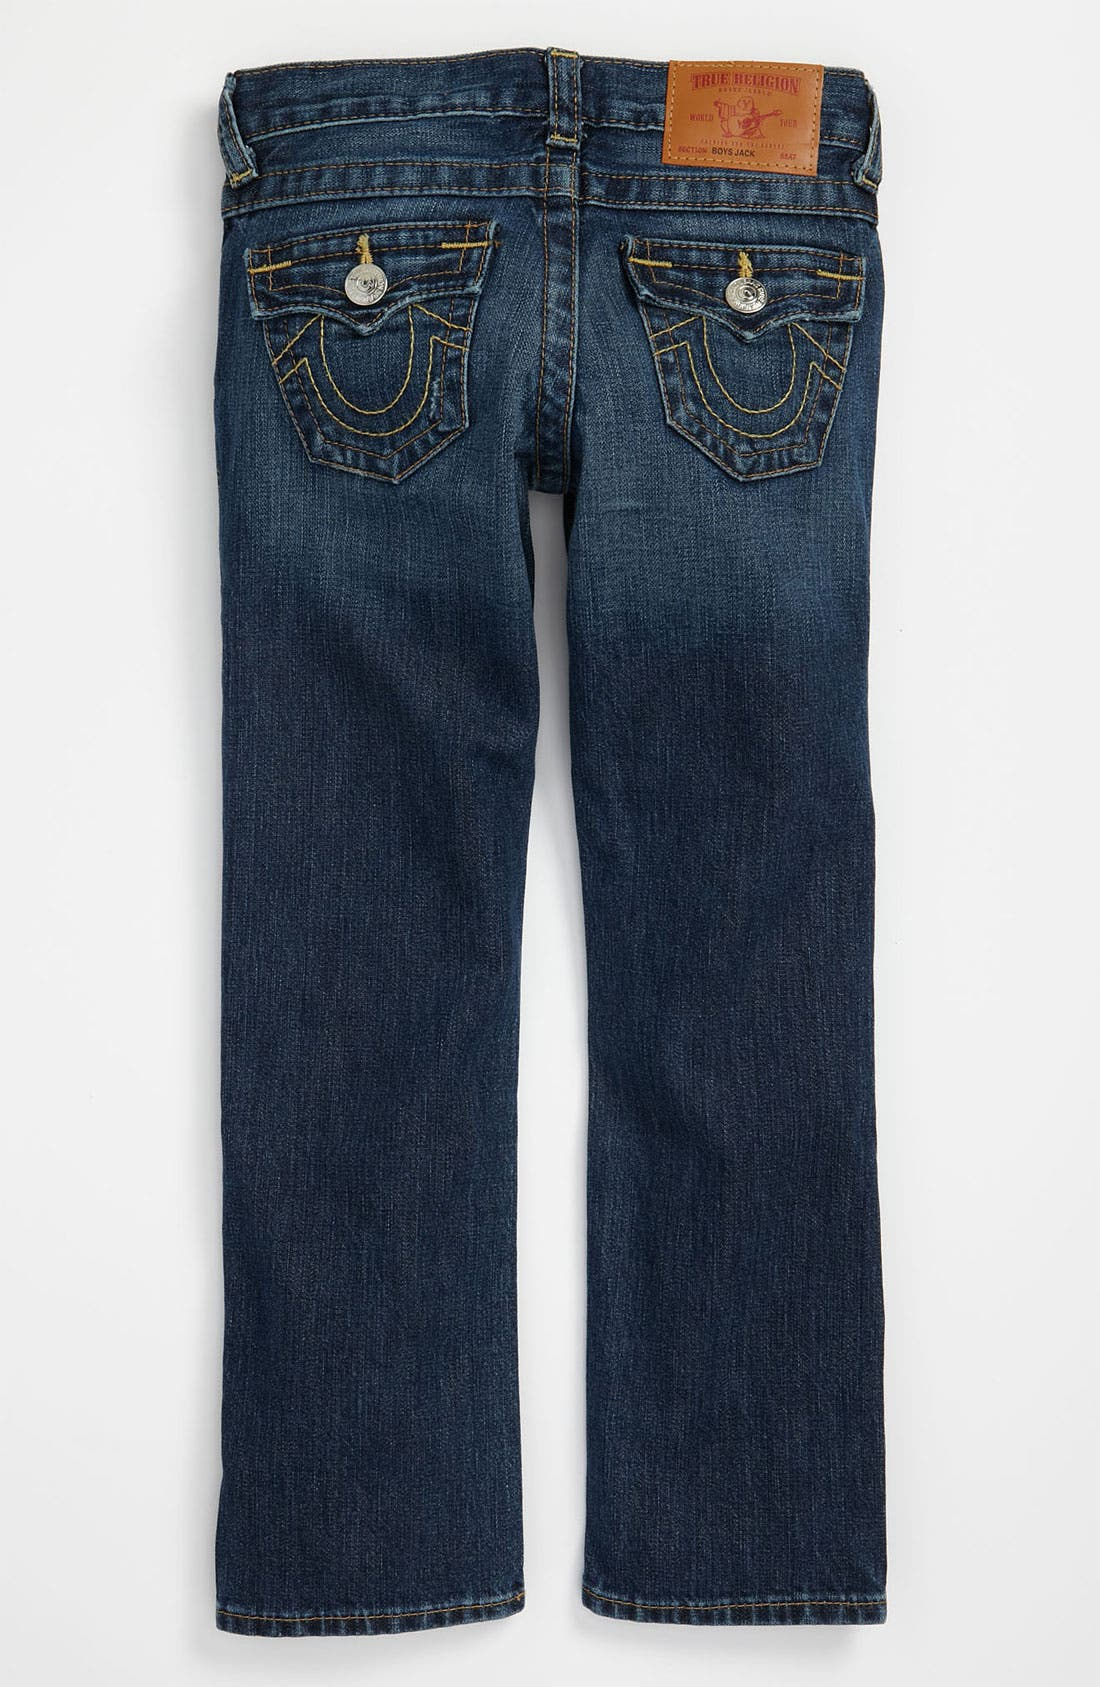 Alternate Image 1 Selected - True Religion Brand Jeans 'Jack' Relaxed Straight Leg Jeans (Big Boys)